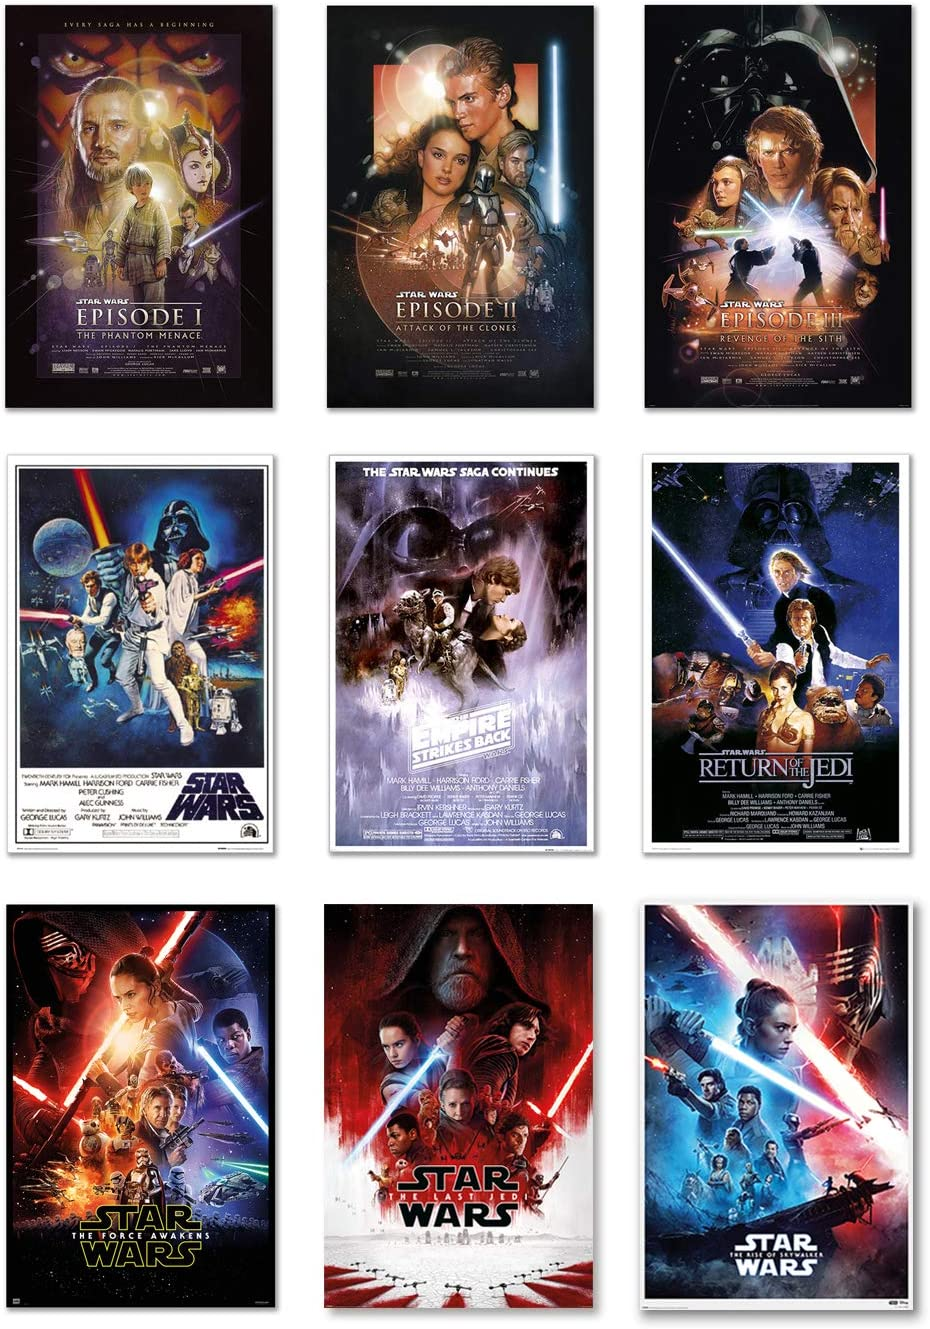 Star Wars: Episode I, II, III, IV, V, VI, VII, VIII & IX - Movie Poster Set (9 Individual Full Size Movie Posters - Regulars Version 4) (Size: 24 x 36 inches Each)